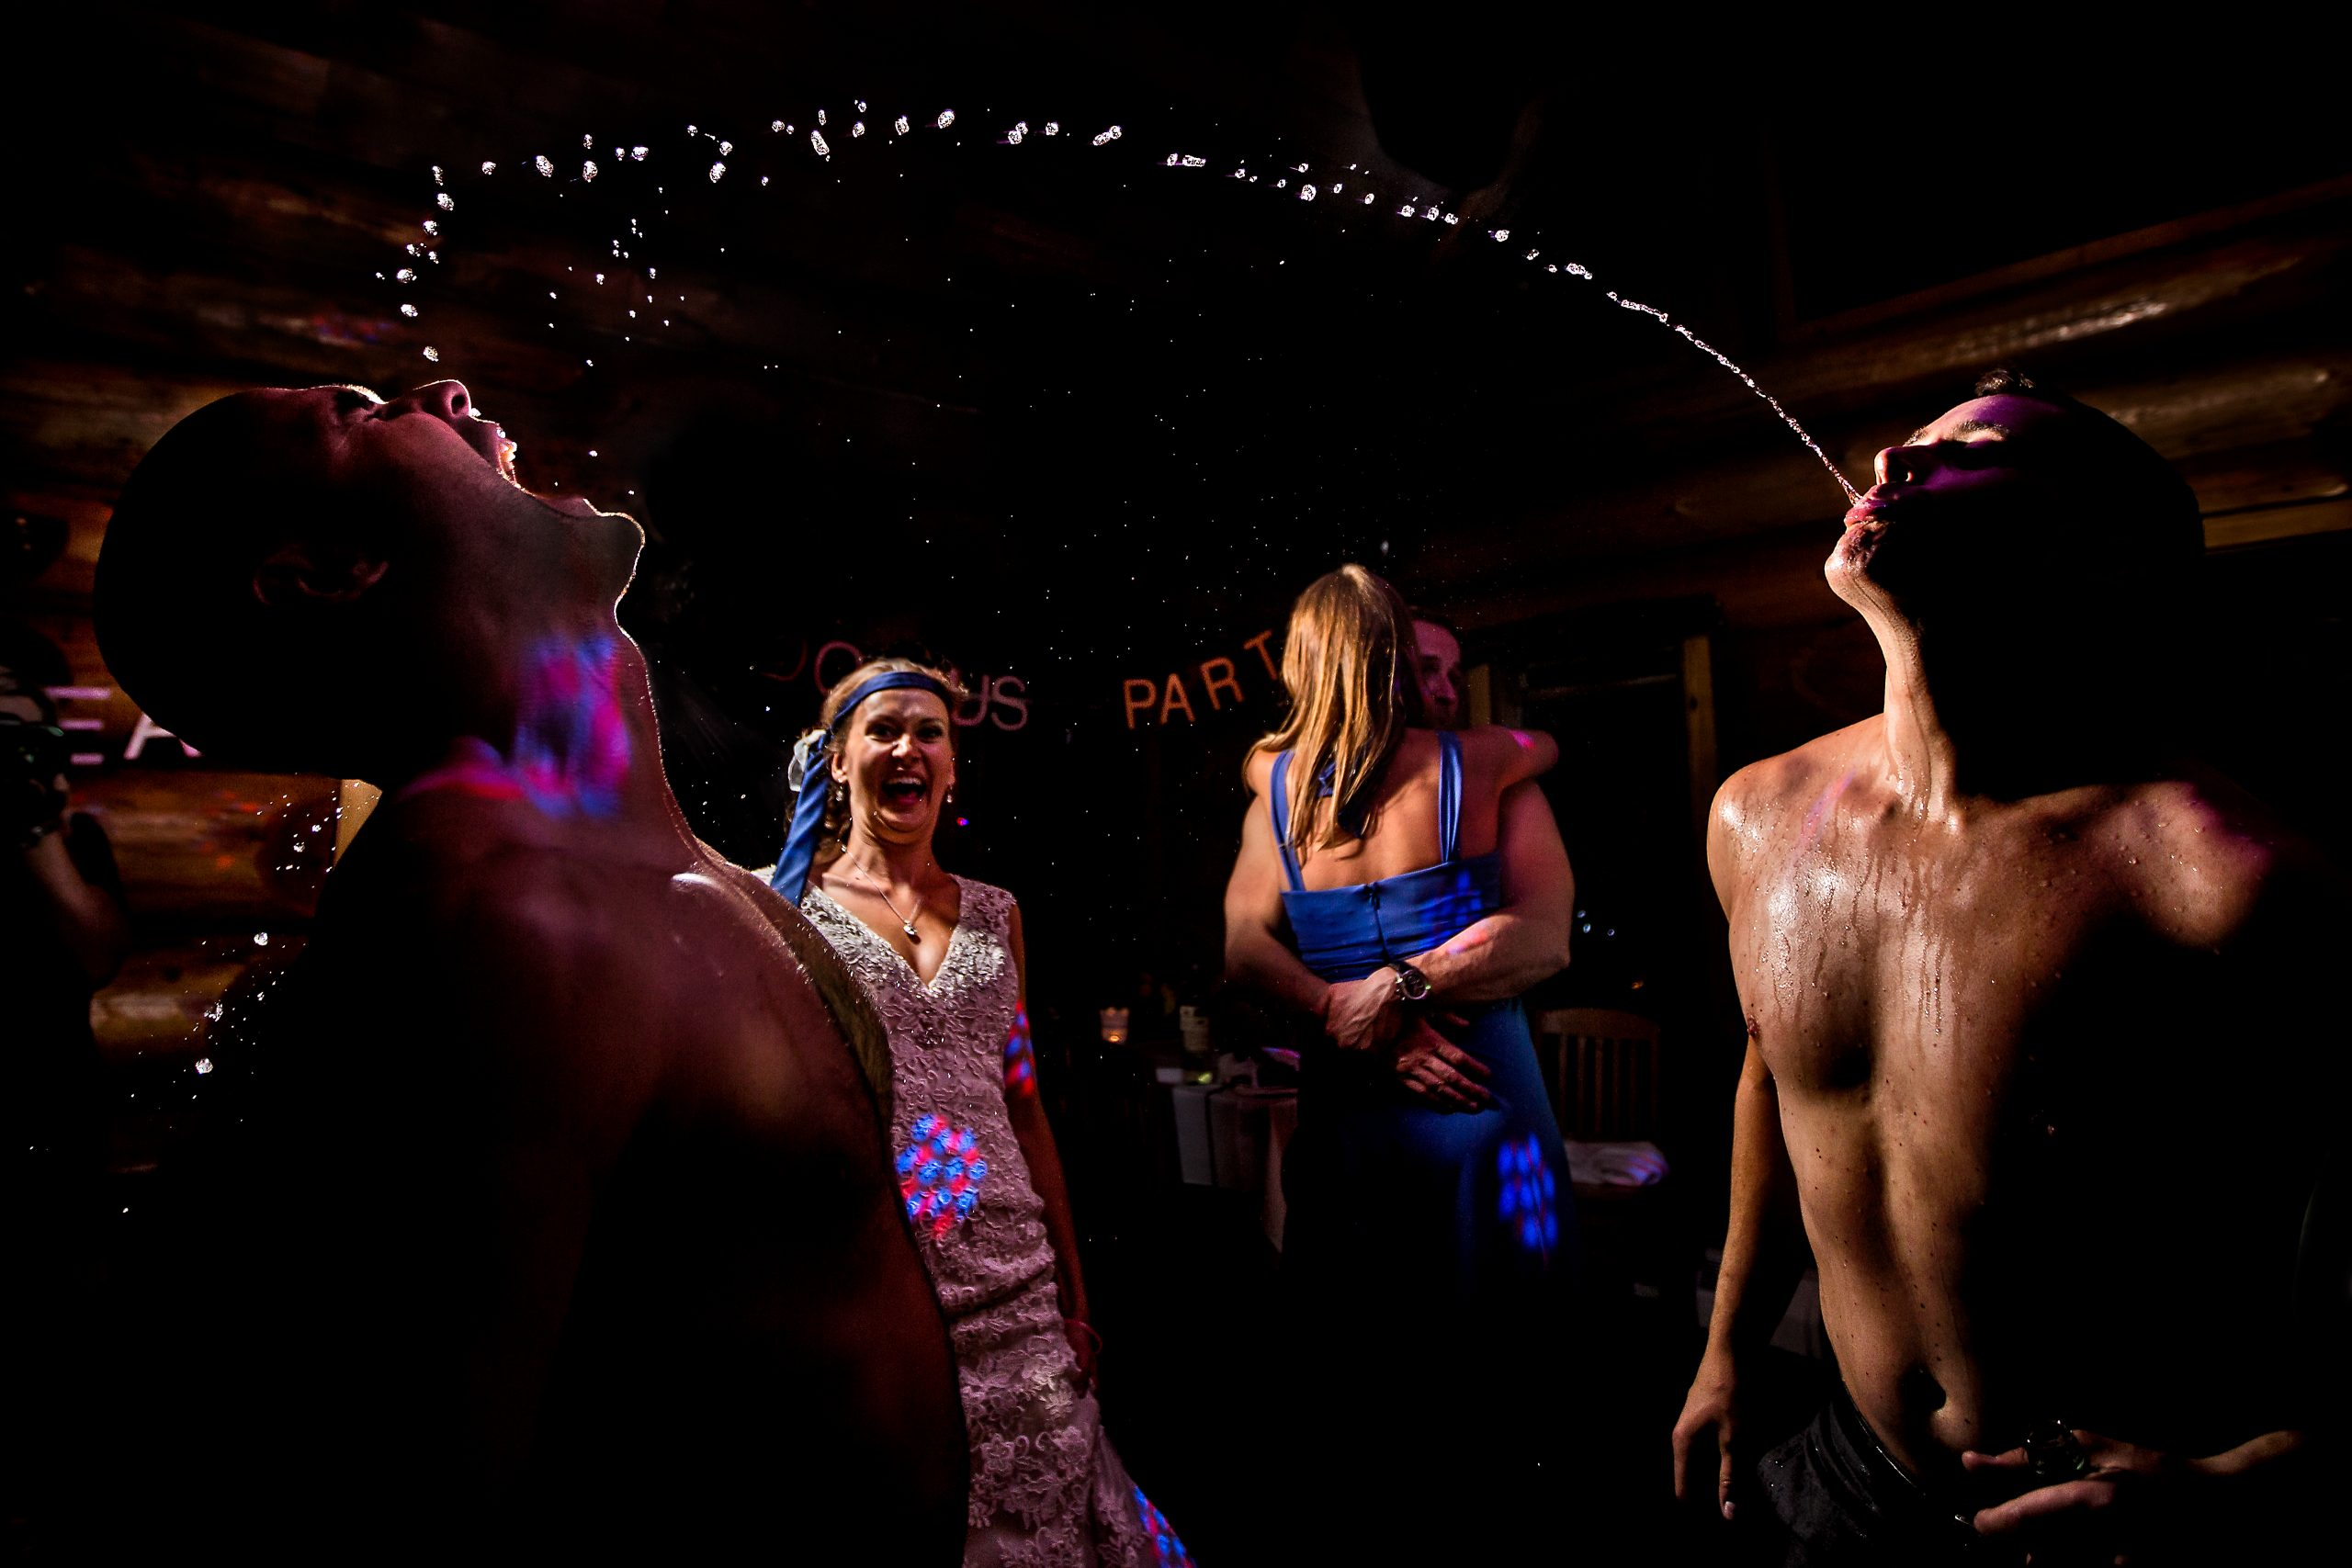 Shirtless groom spitting wine across dance floor into groomsman's open mouth with bride cheering on at Island Lake Lodge in Fernie, BC